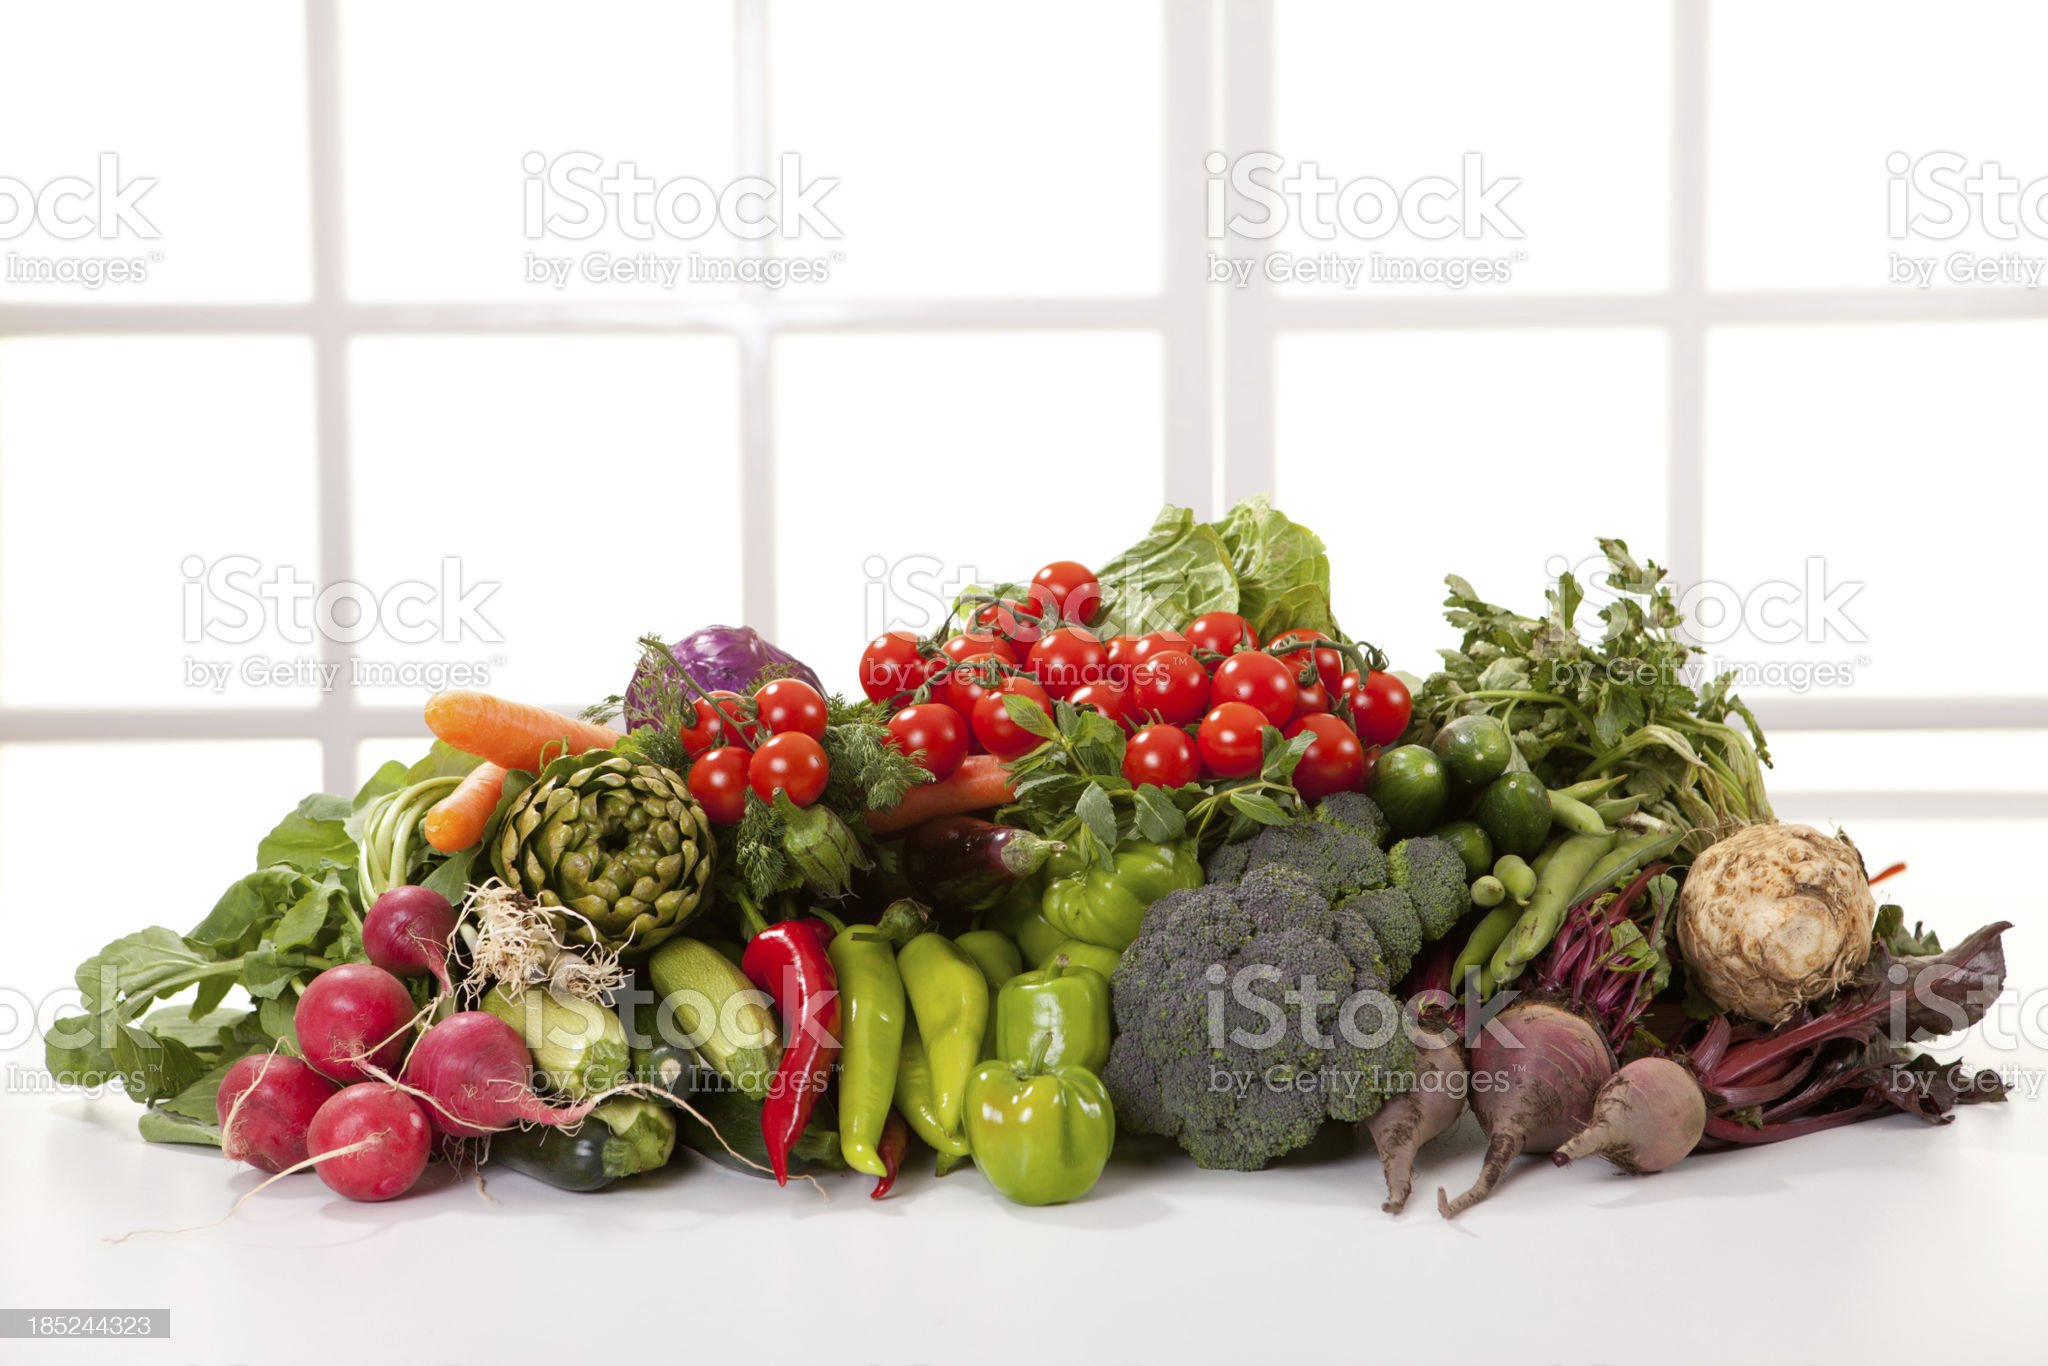 Vegetable royalty-free stock photo